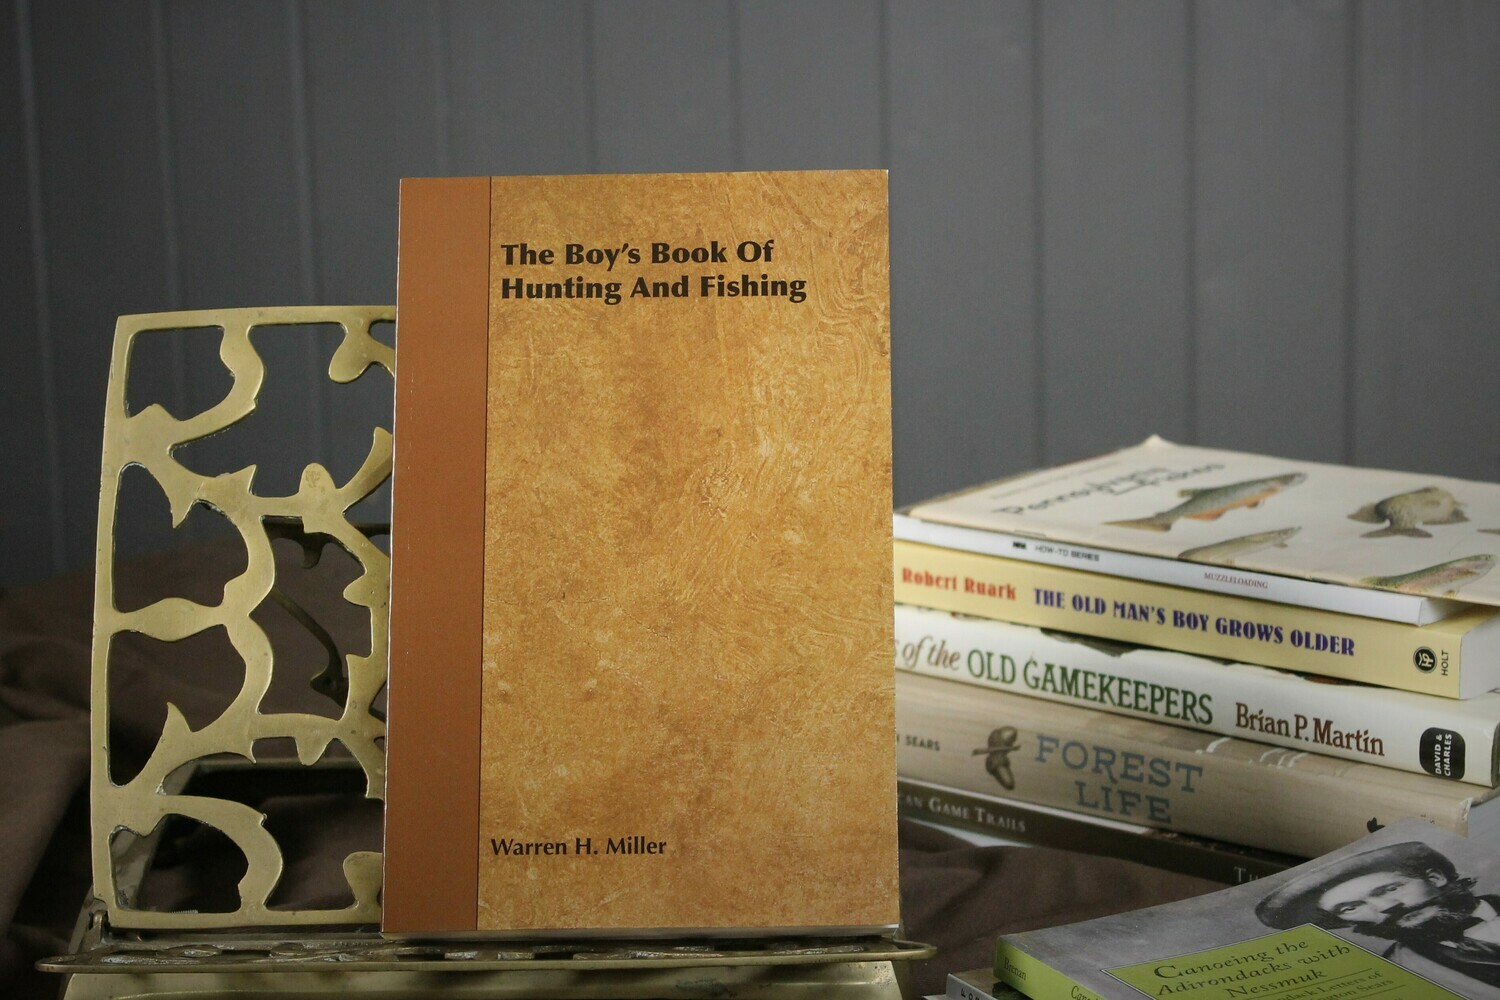 The Boy's Book of Hunting and Fishing by Warren H. Miller